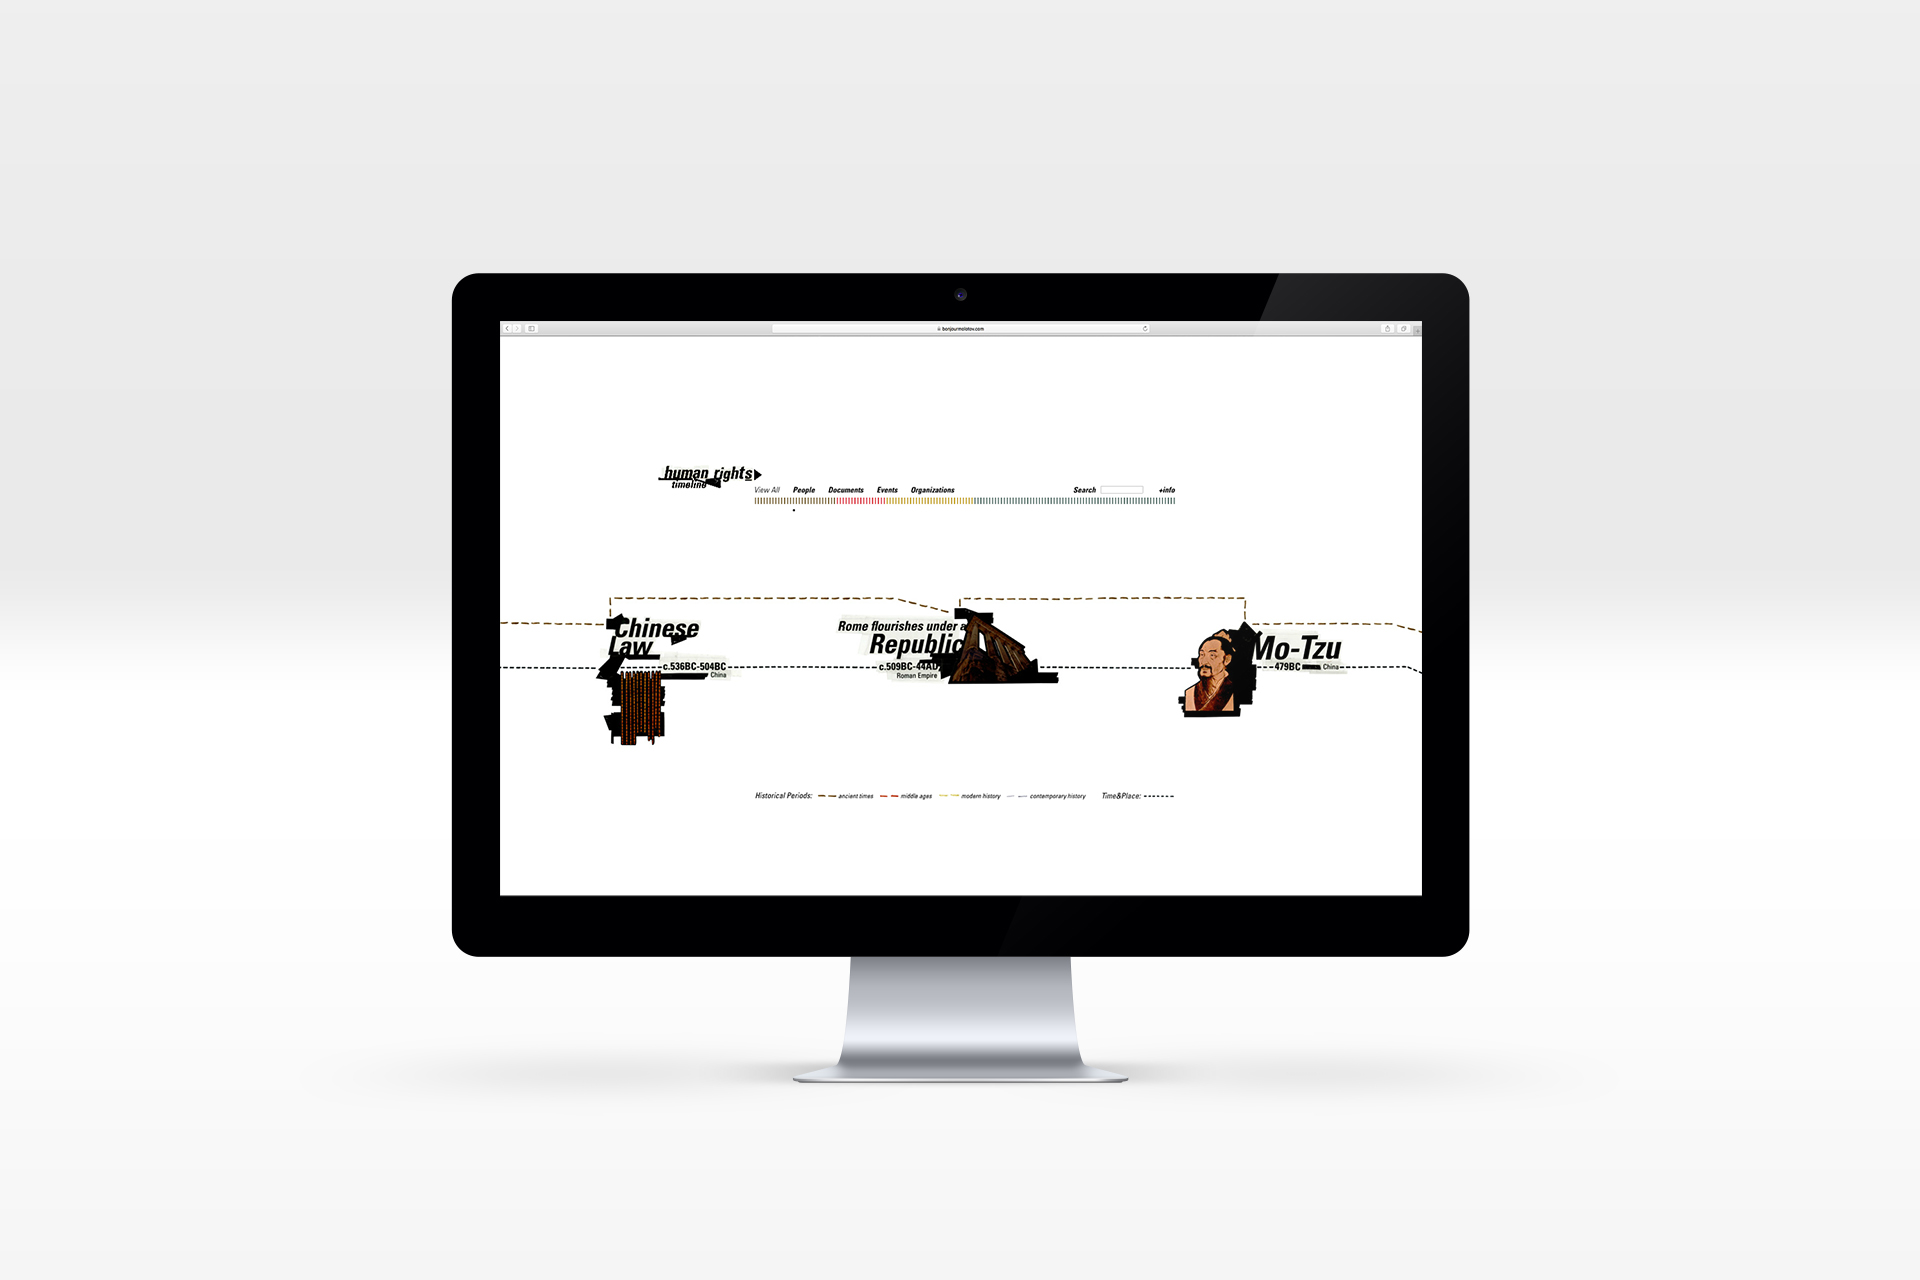 Human rights timeline website graphic web design illustration bonjourmolotov.jpg